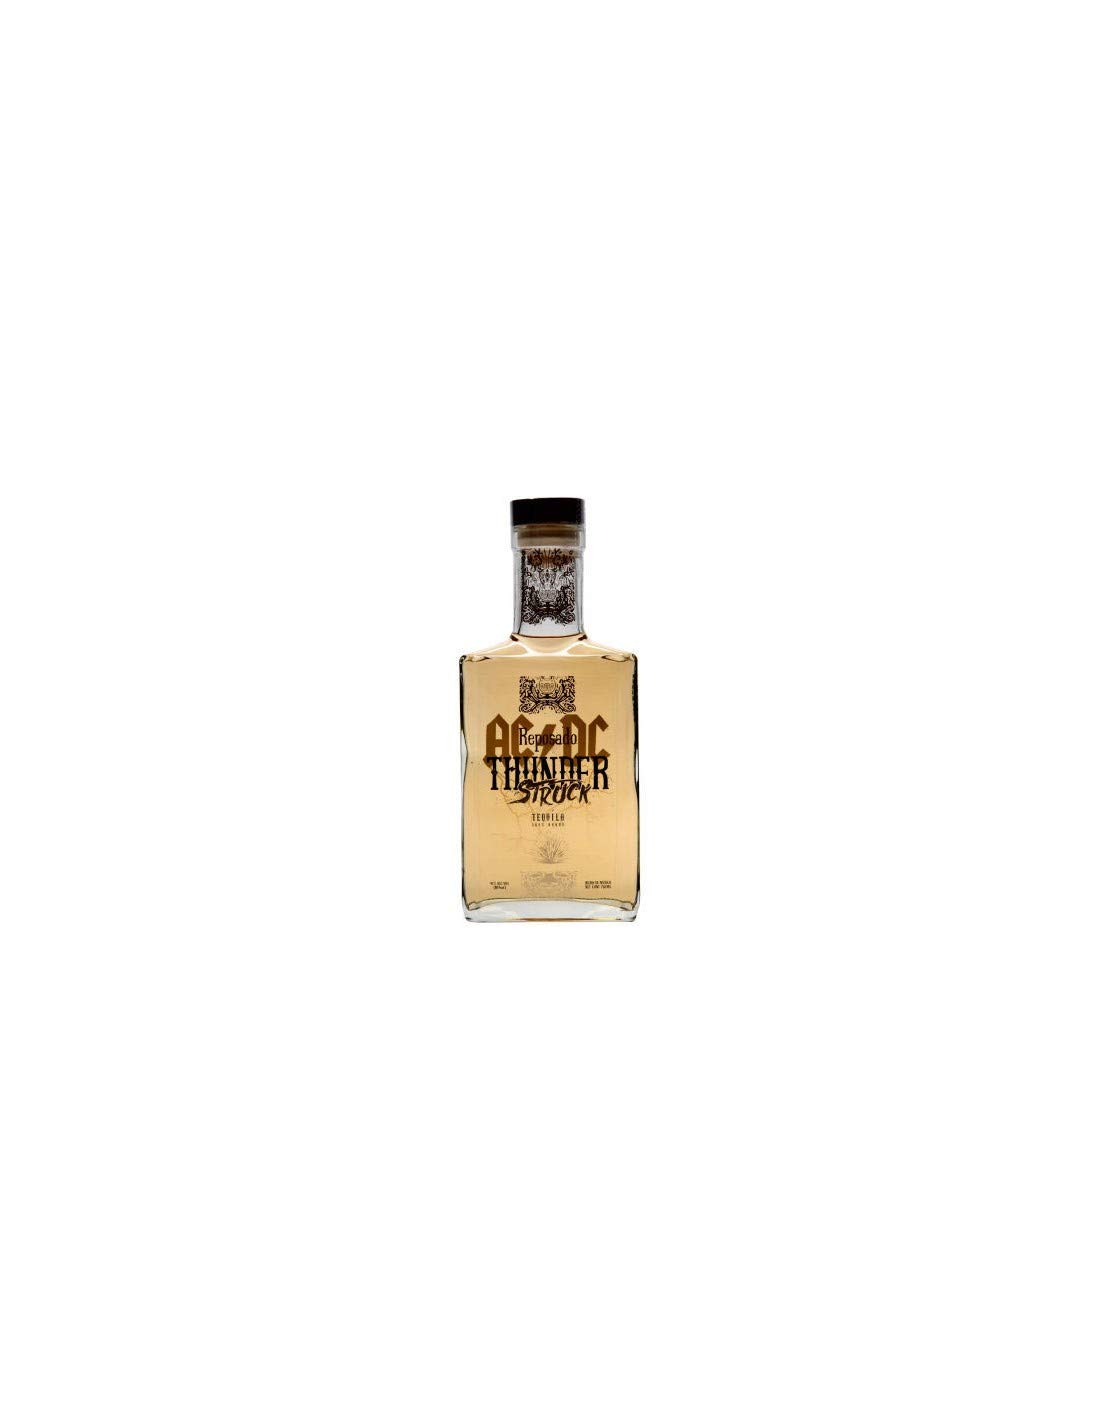 ACDC-Thunderstruck-Tequila-ACDC-Thunderstruck-REPOSADO-Tequila-de-Agave-Tequila-1-x-07-l